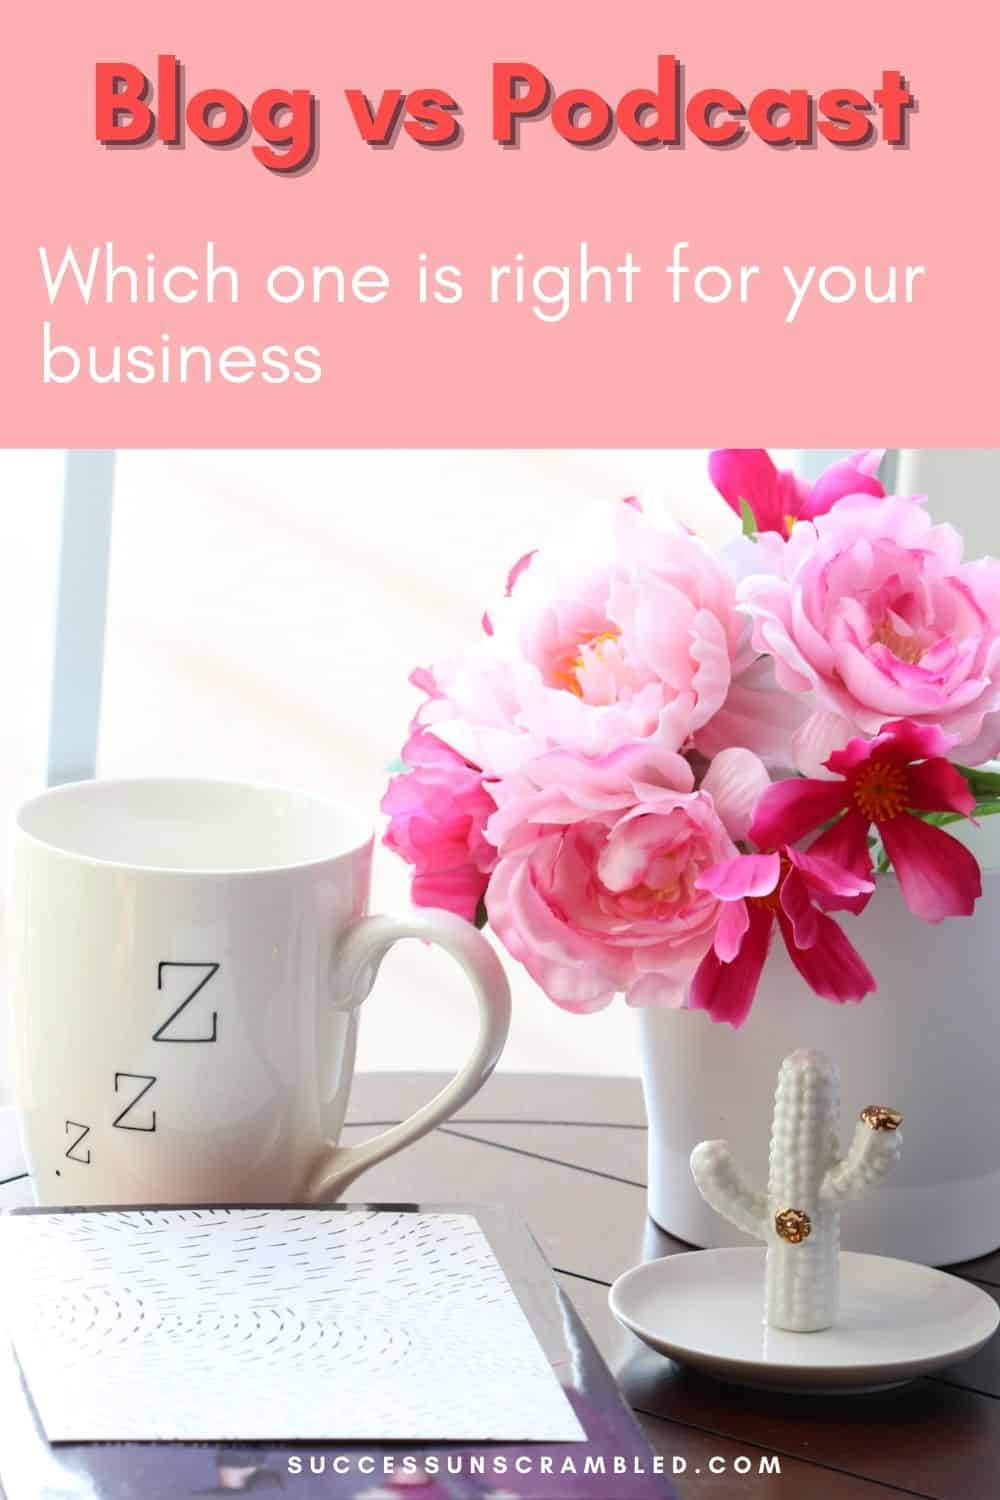 image showing a bunch of flowers next to a coffee mug and notepad